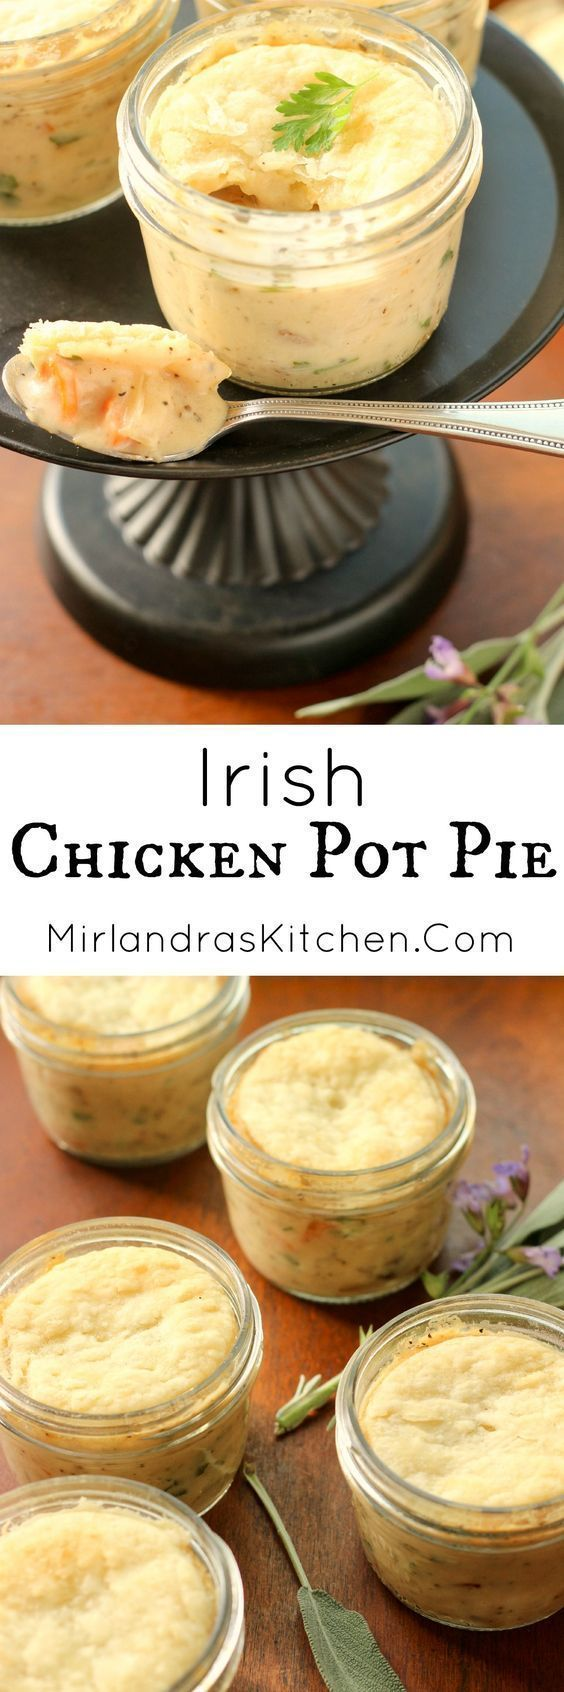 I make this Irish Chicken Pot Pie from scratch and it really is comfort food at its finest!  The pies have a creamy, meaty filling and are topped with a puff pastry crust. Bake them in mason jars for simple individual servings that transport well!